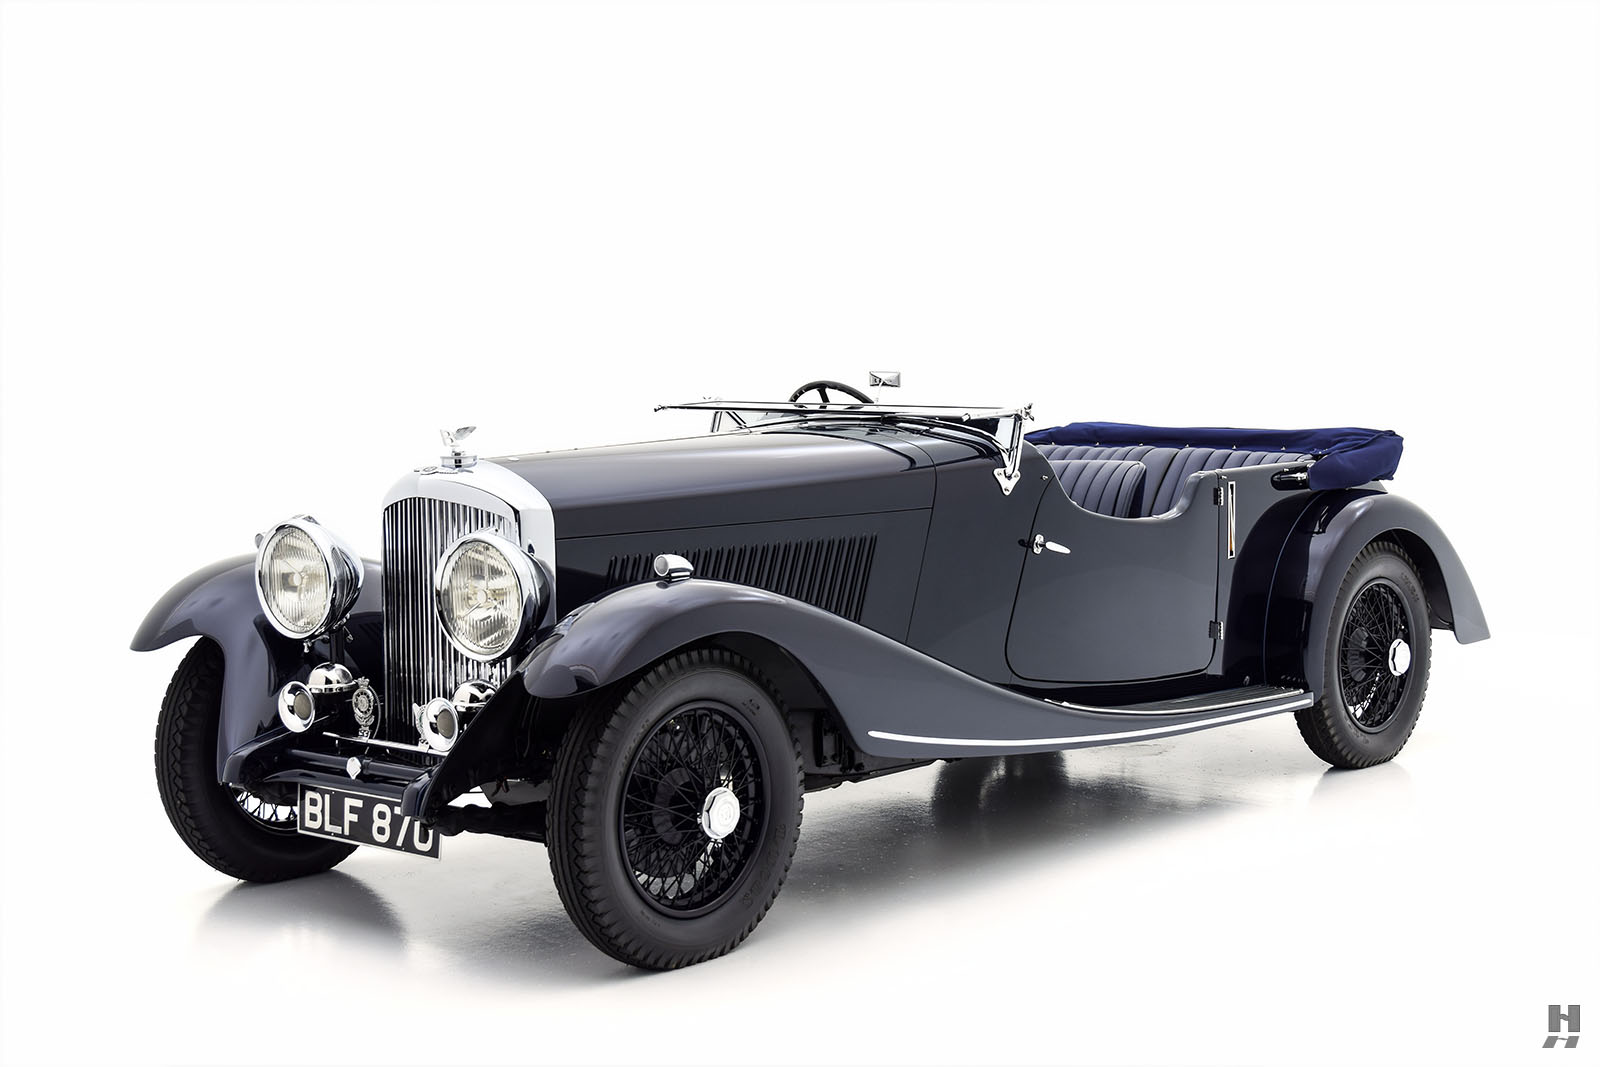 1934 Bentley 3 1/2 Liter Tourer For Sale By Hyman LTD